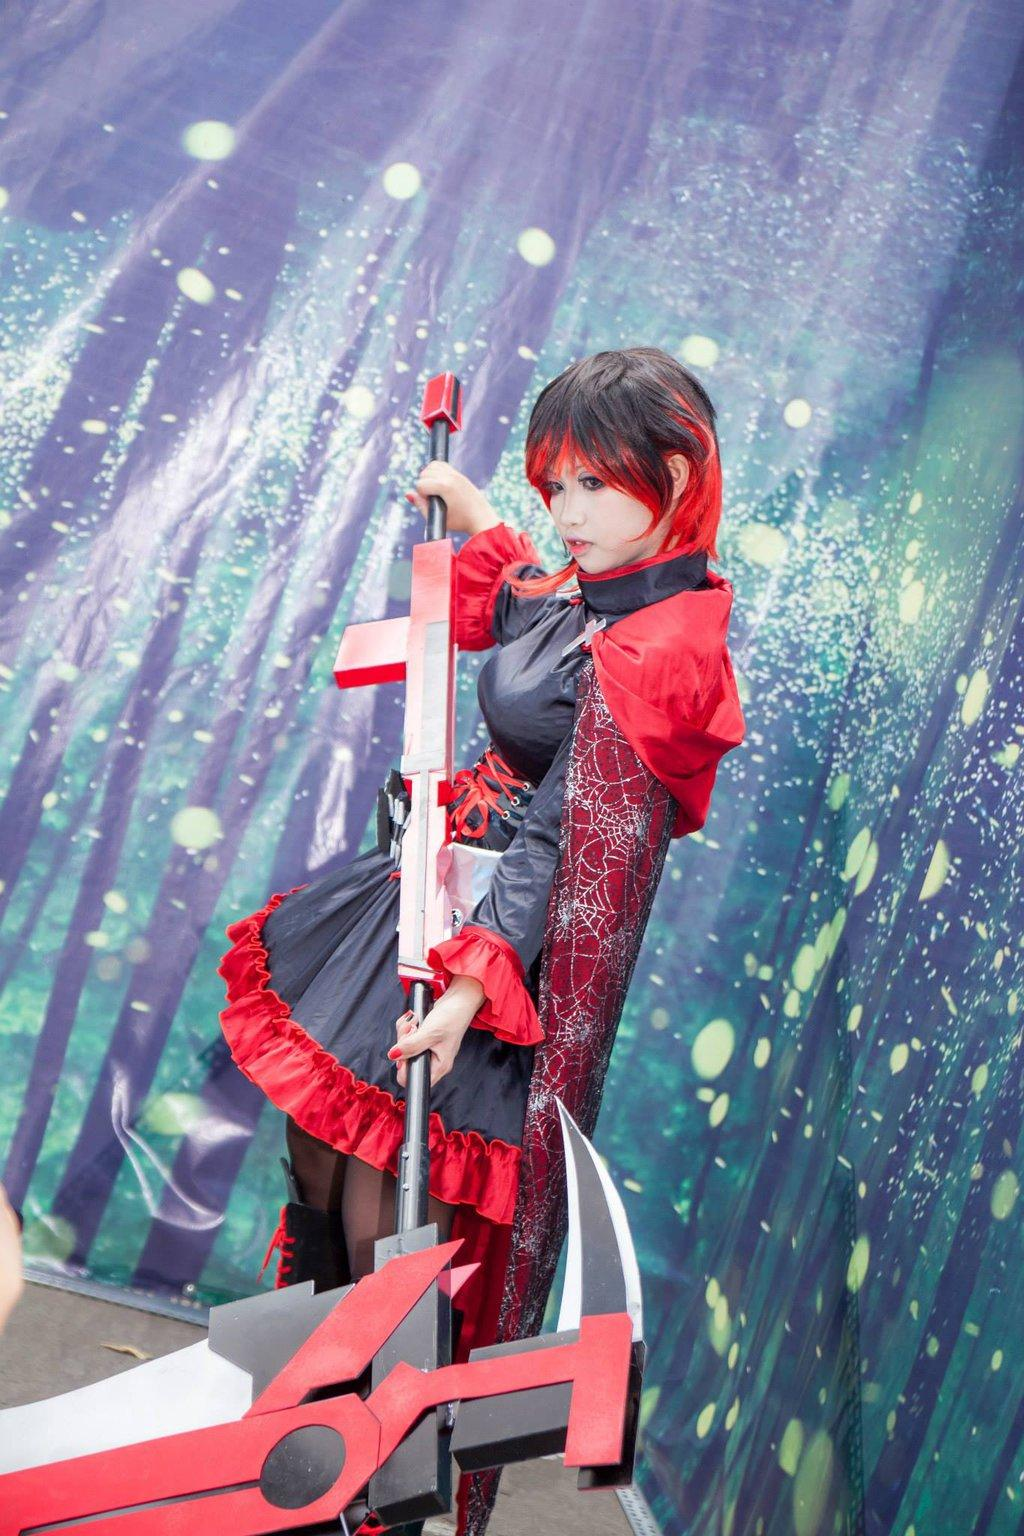 Ruby Cosplay | RWBY | Know Your Meme